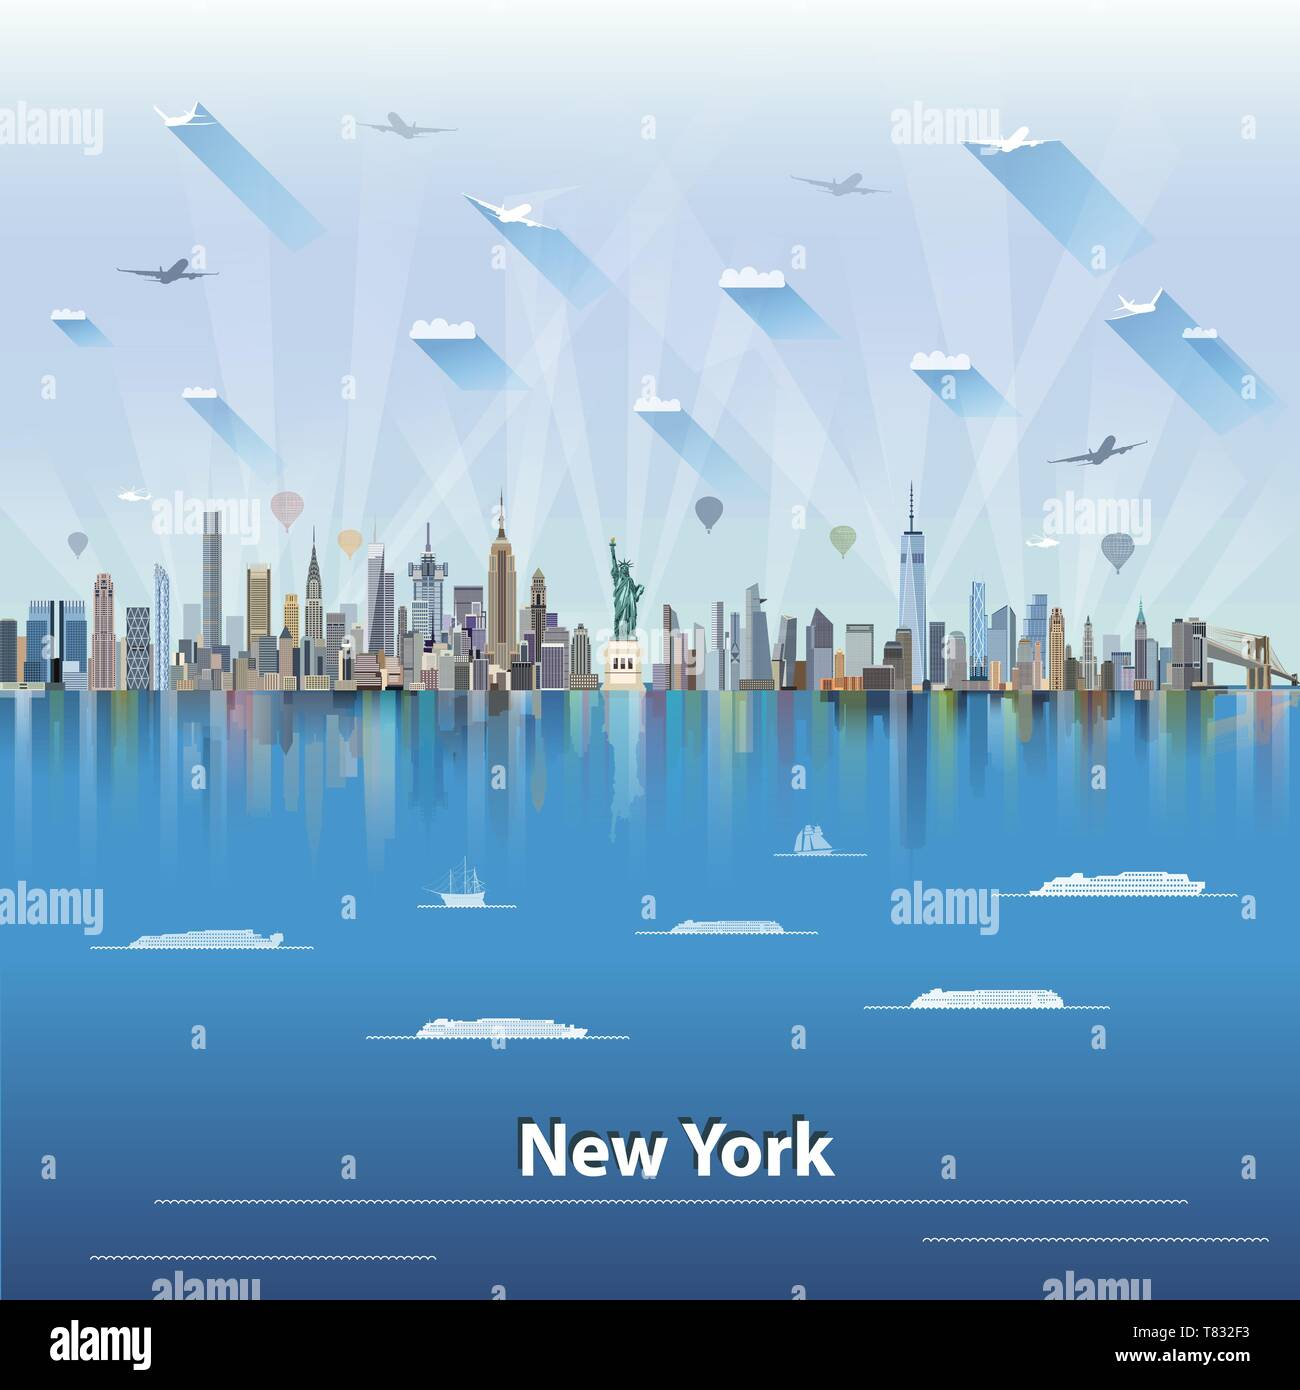 vector illustration of New York panoramic city skyline - Stock Vector